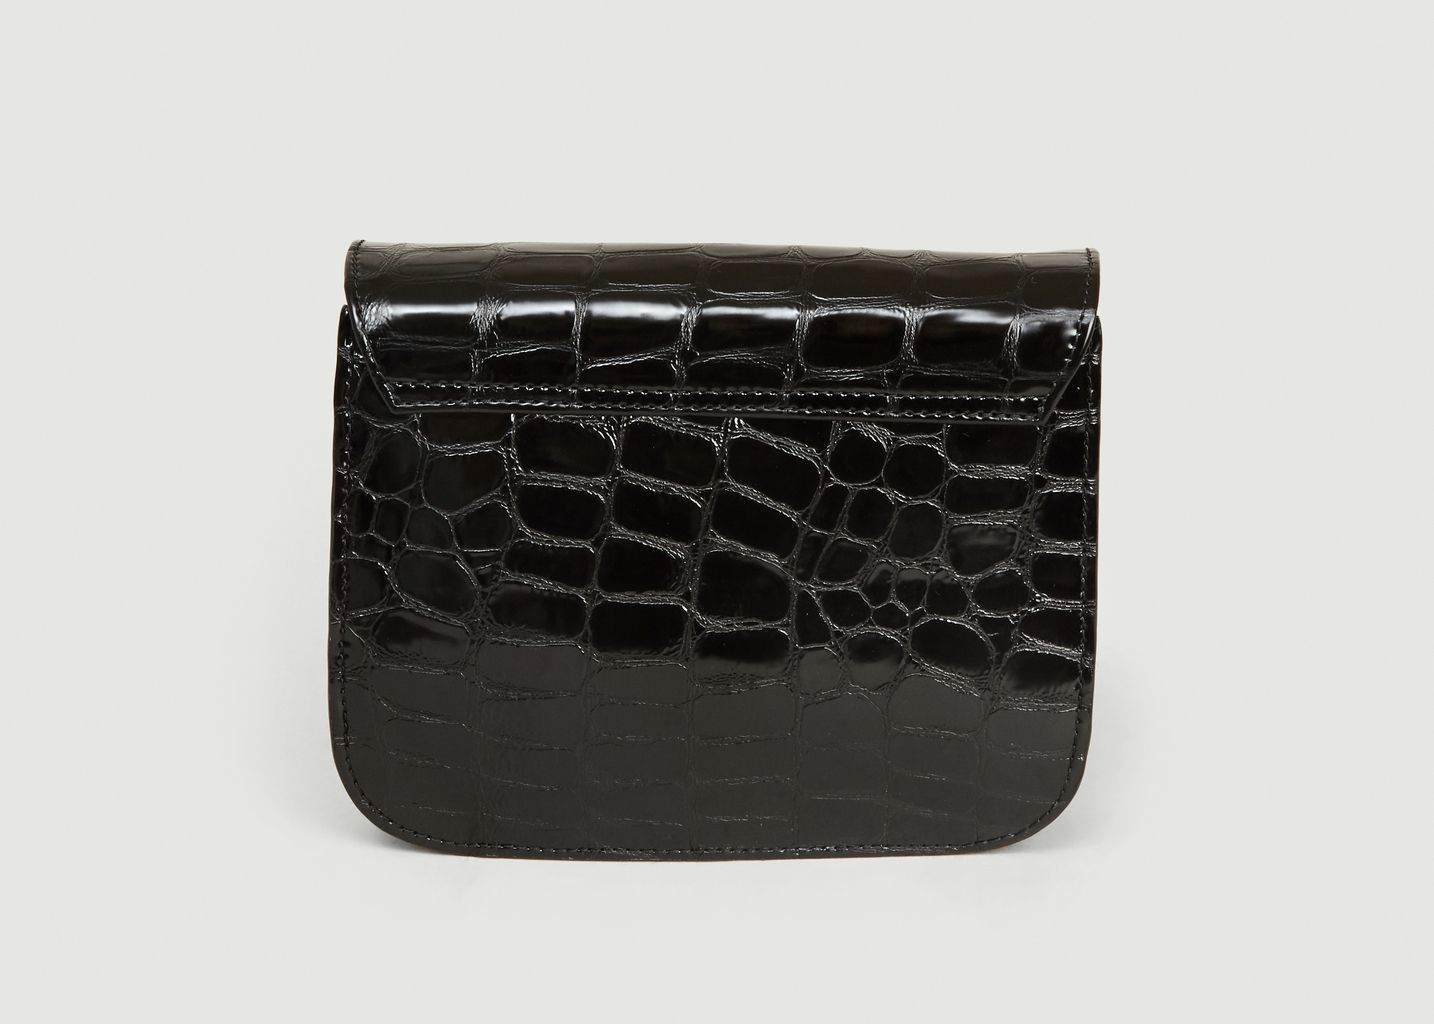 Sac En Cuir Façon Croco Prague - Anthology Paris